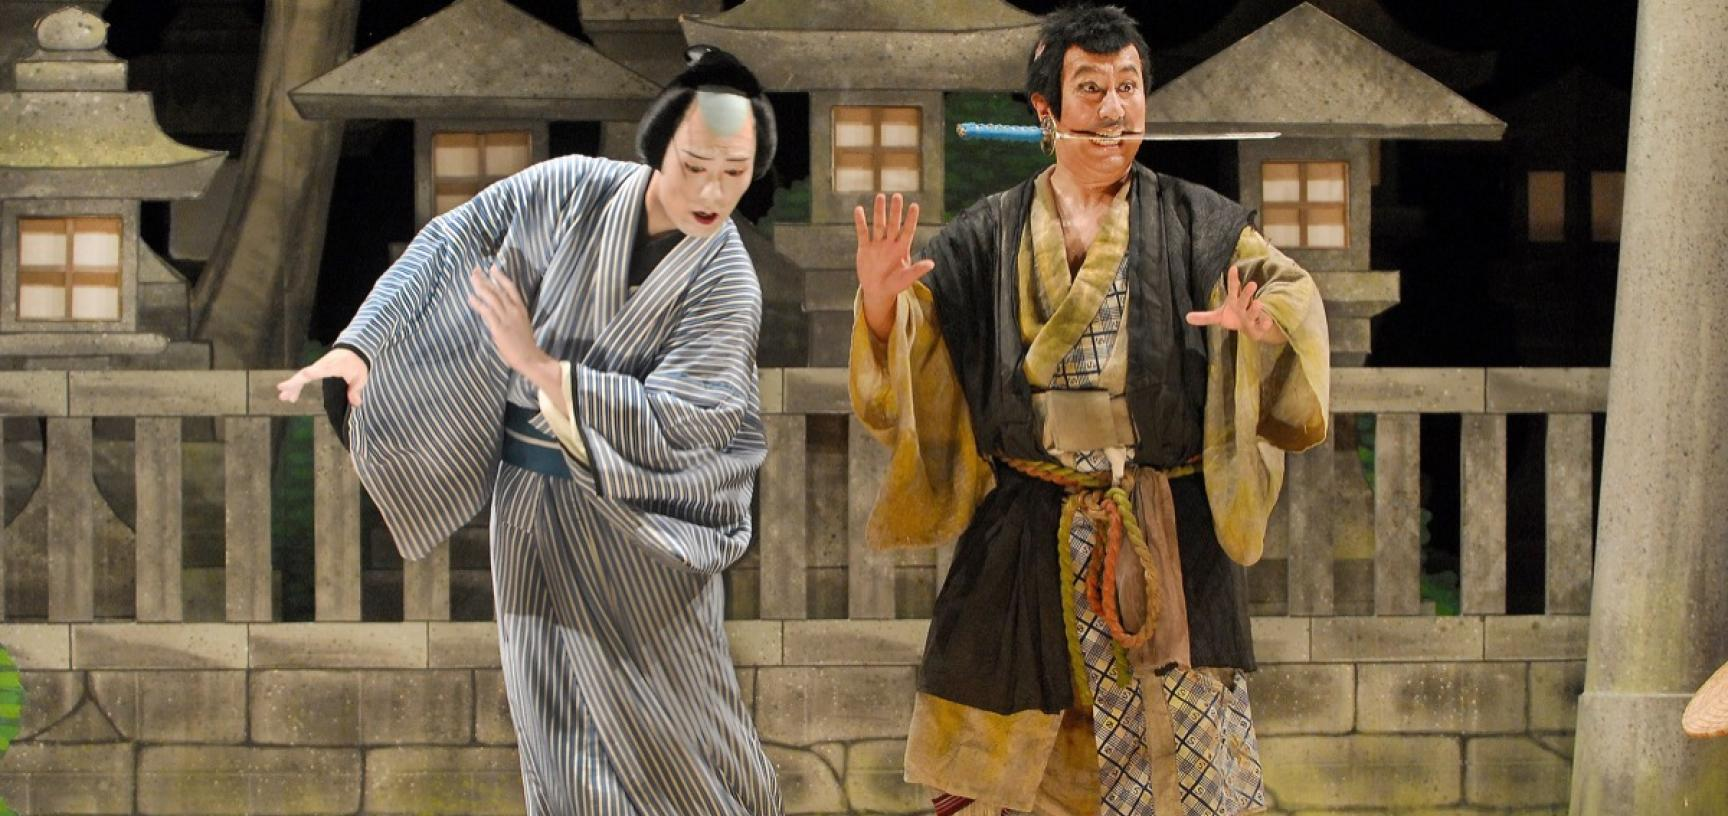 Scene from Heisei Nakamura-za's production of Hokaibō. First performed in Osaka in 1784, the play's narrative follows defrocked mendicant priest Hokaibō – here played by Nakamura Kanzaburō XVIII – as he becomes embroiled in a plot involving a precious fam